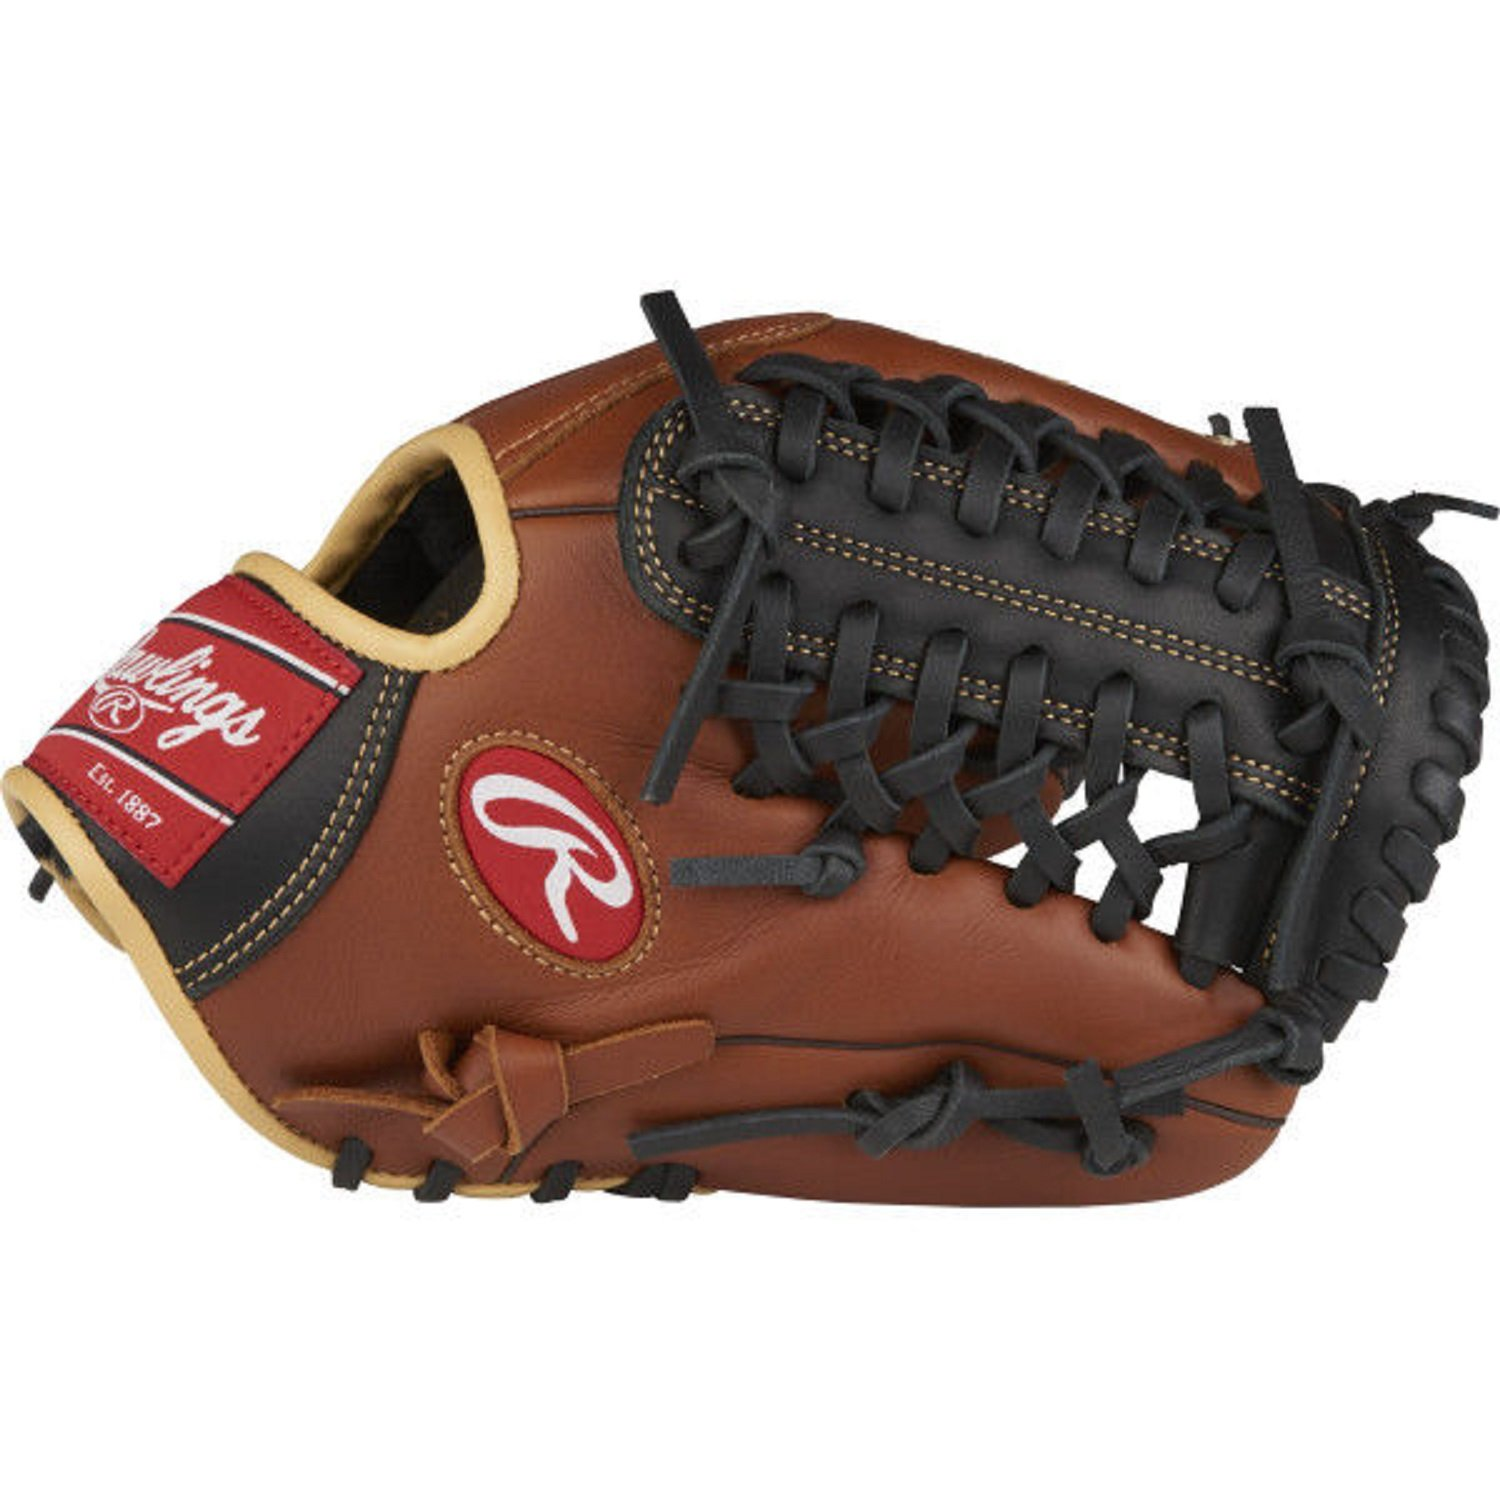 熱販売 Rawlings Sandlot Series B078GDFCZB Right 11 3/4